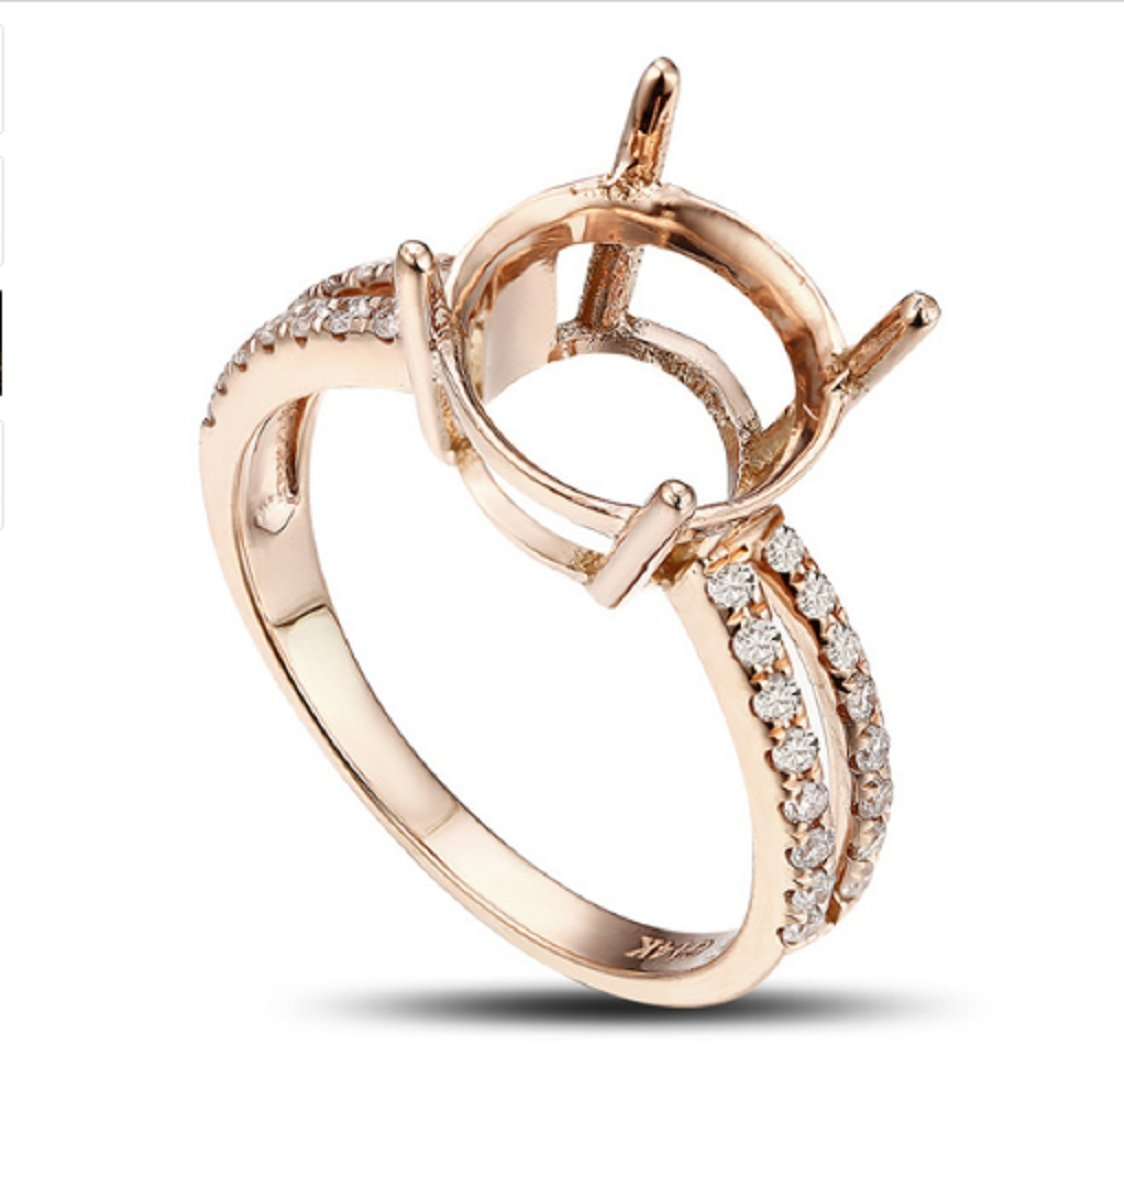 GOWE 10.0mm Round 14k Rose Gold Pave .35ct Round Cut Diamond Semi Mount Ring Resizable by GOWE